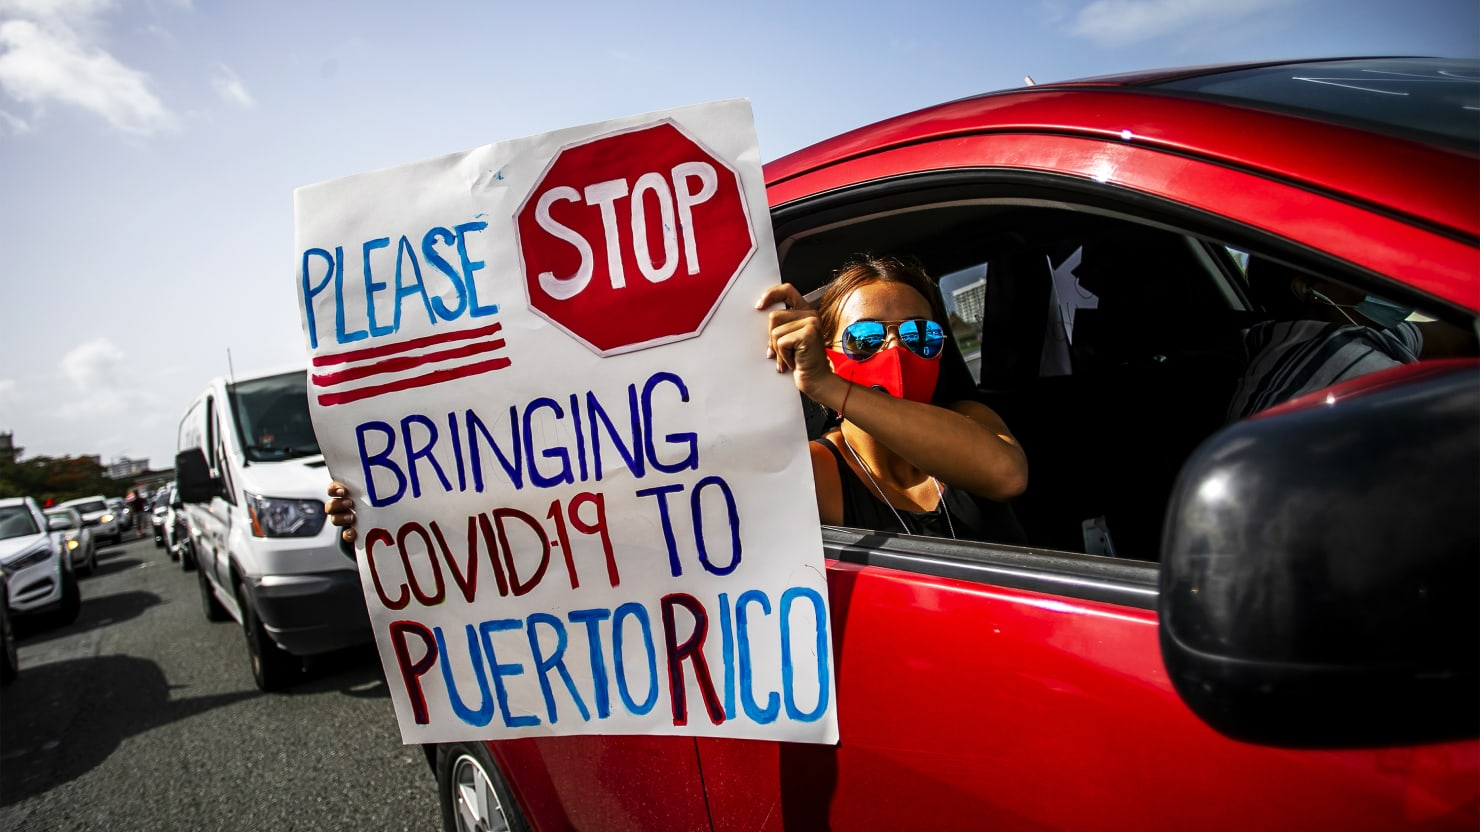 Deluded Anti-Mask Tourists Swarm COVID-Plagued Puerto Rico